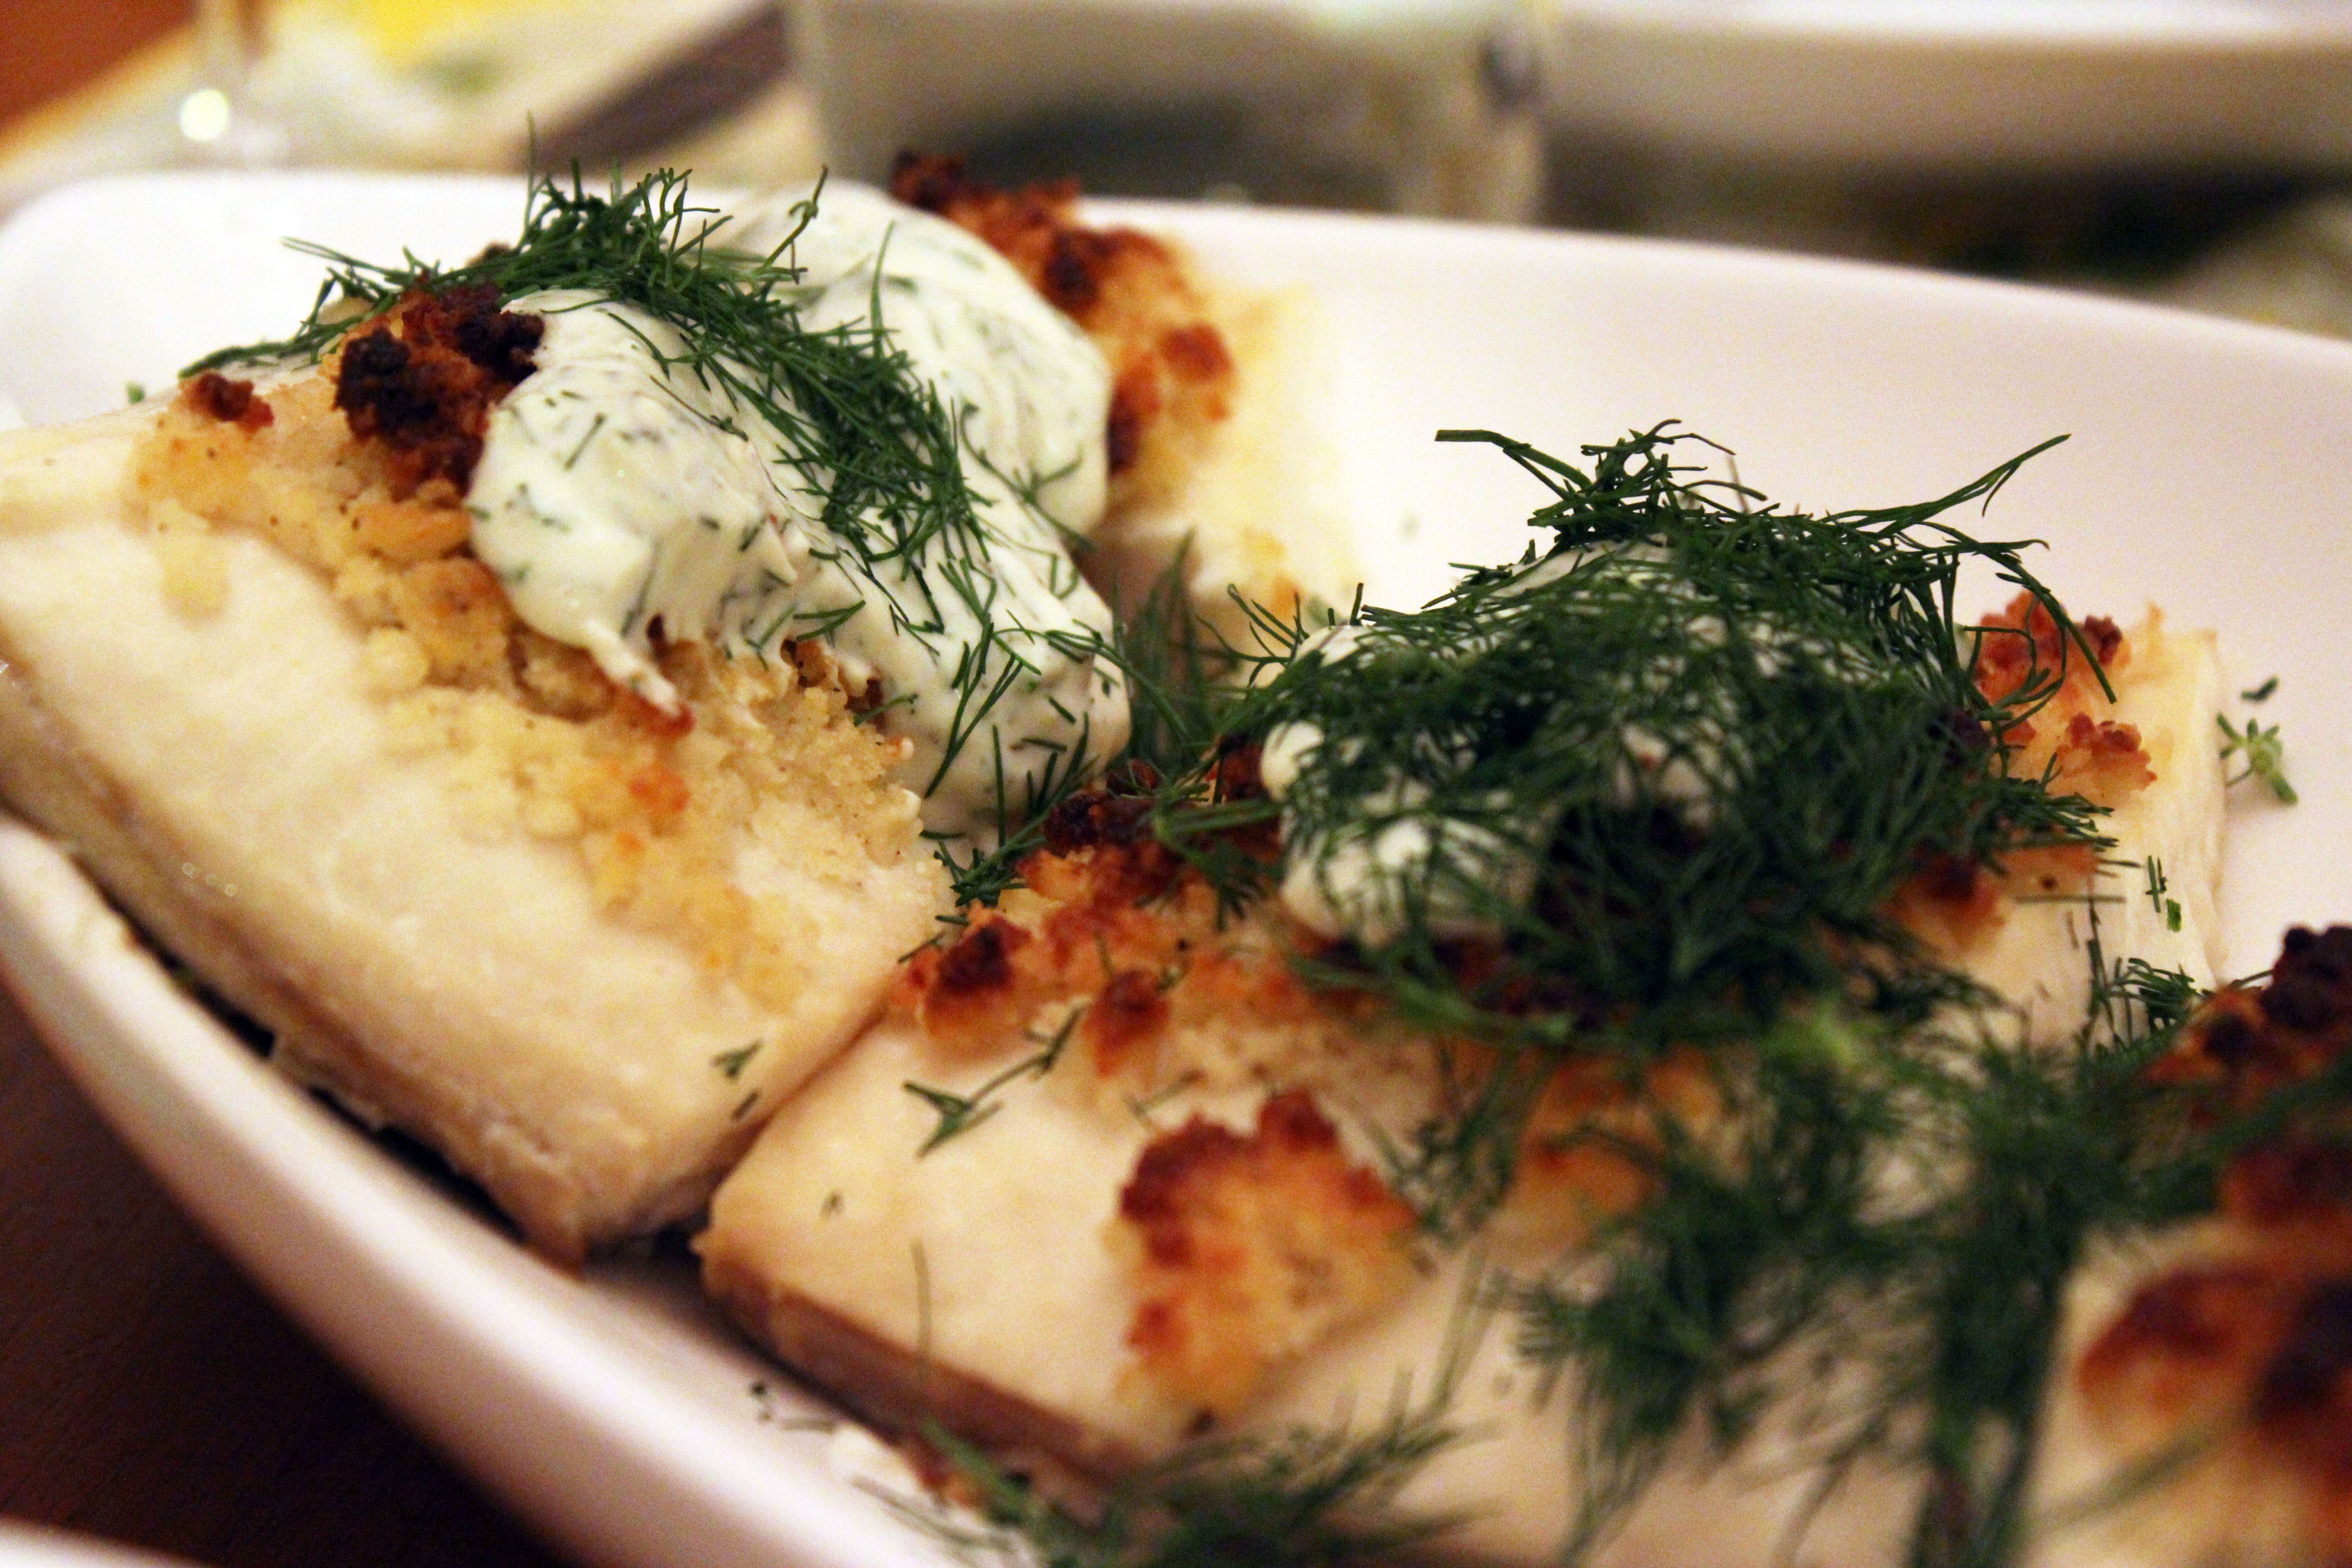 Parmesan-Crusted Fish with Creamy Dill Sauce